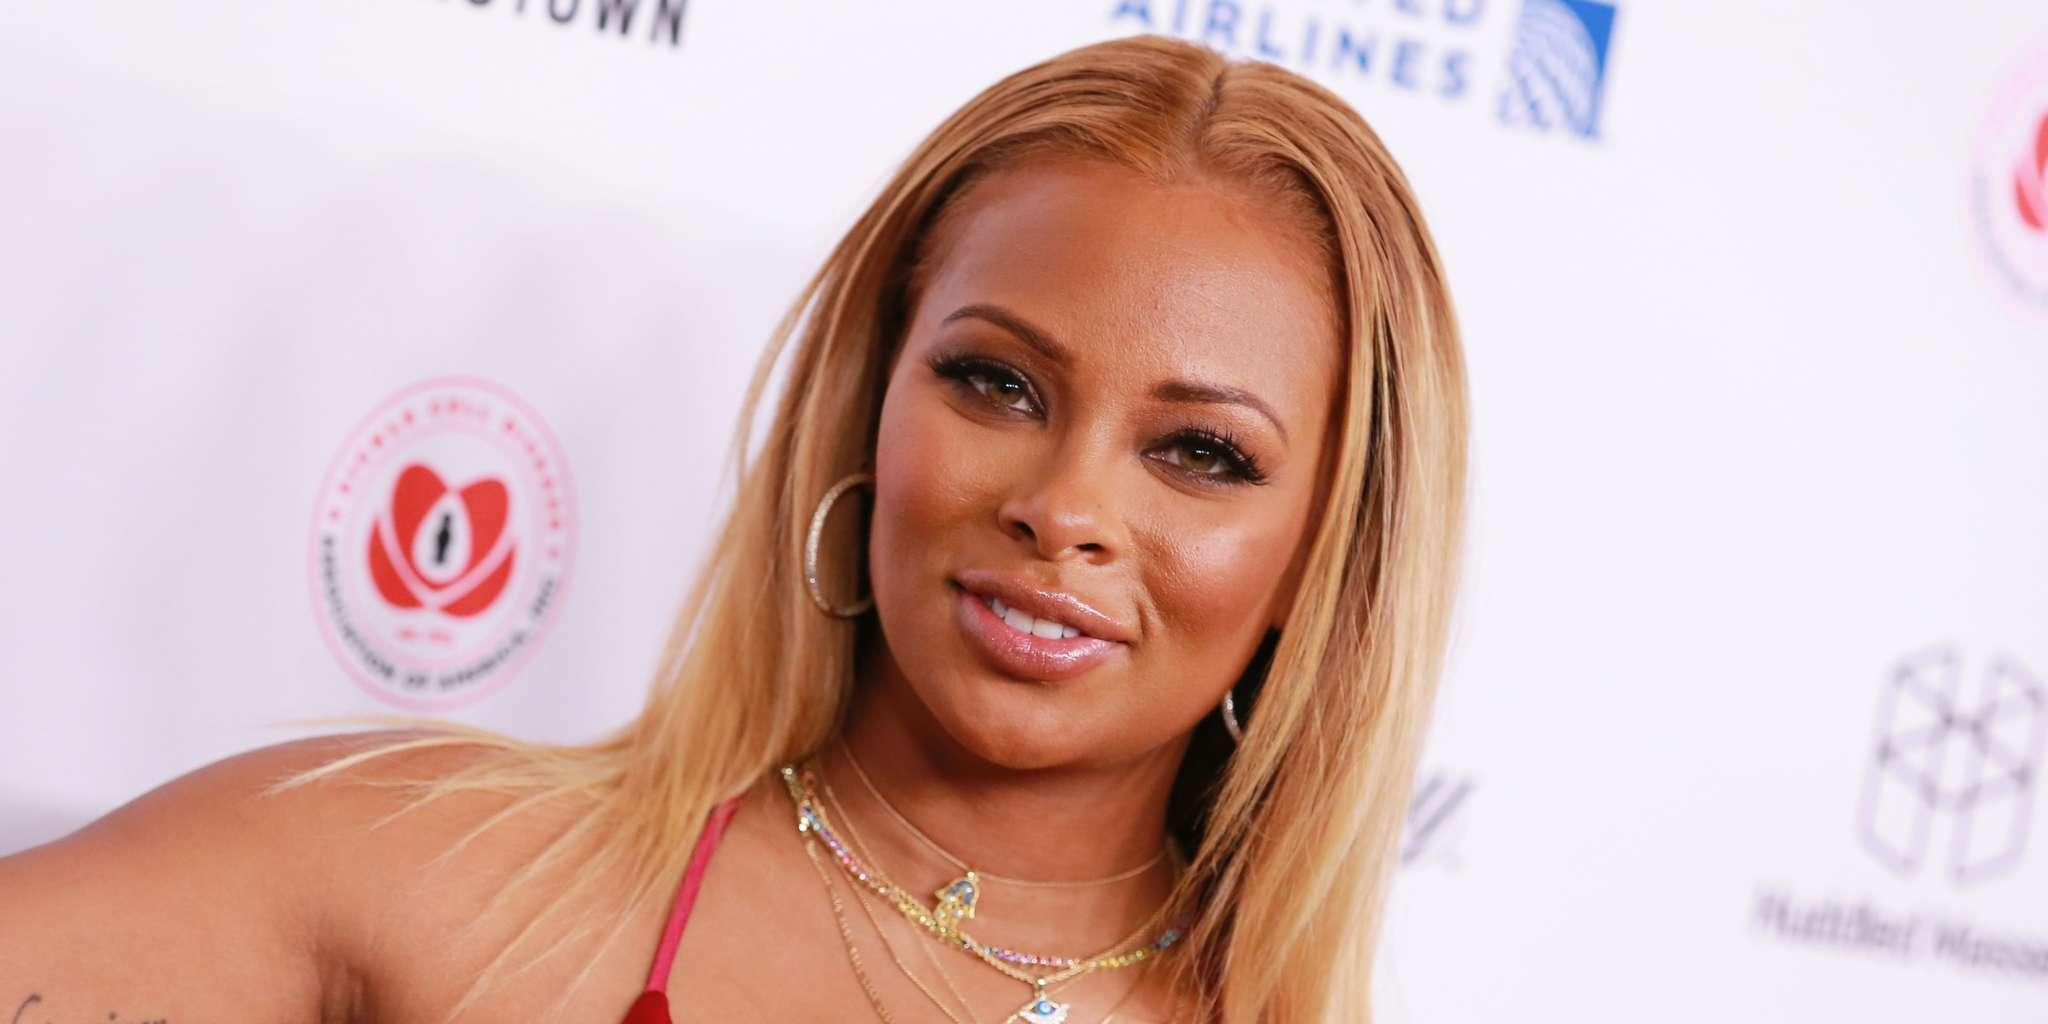 Eva Marcille Shares An Emotional Video That Has Fans In Awe